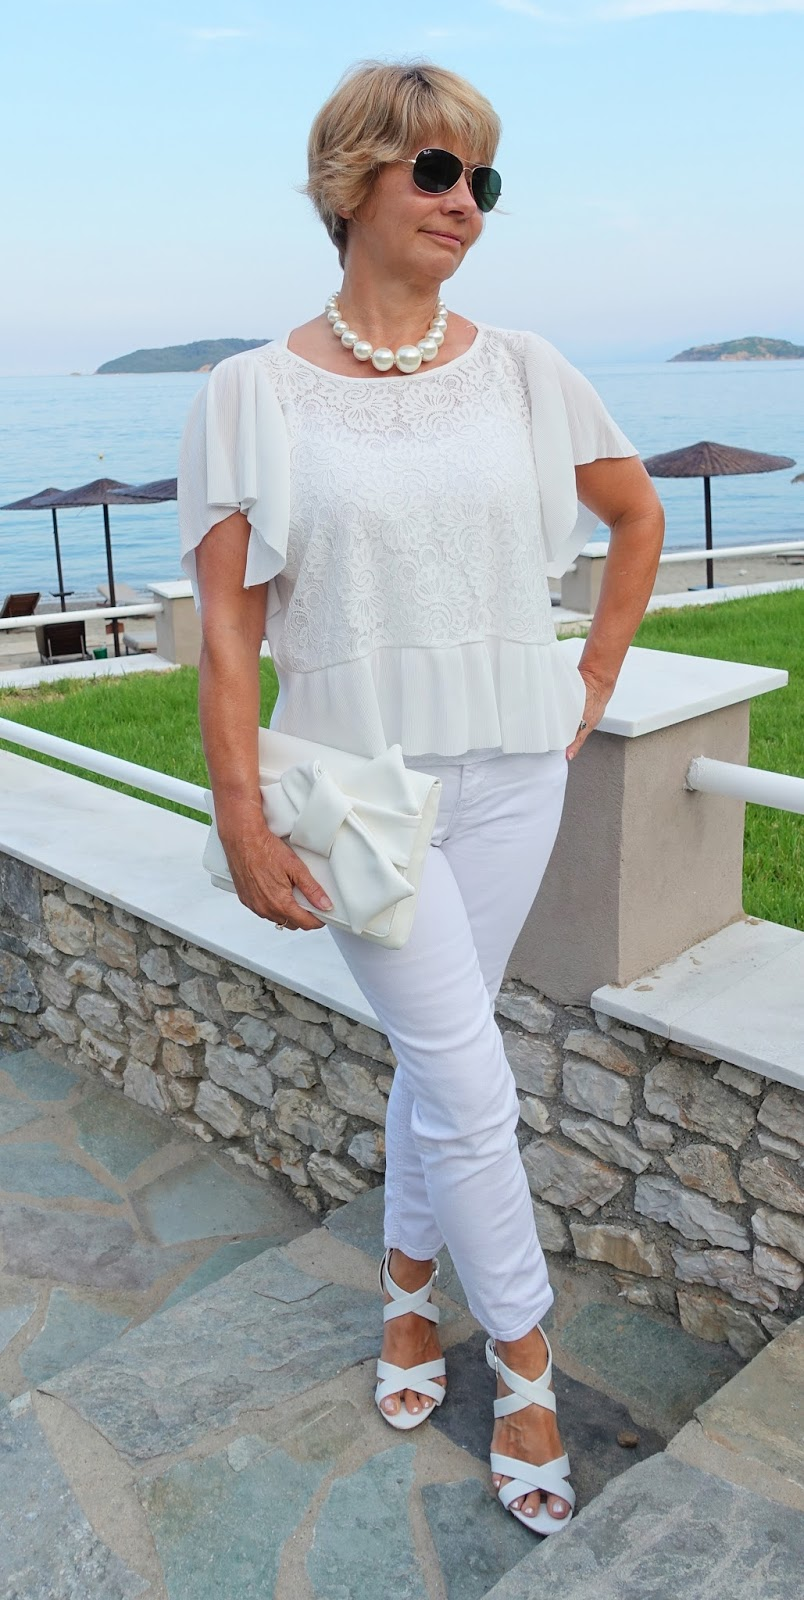 A monochromatic outfit - all white - for summer, shown by Is This Mutton's Gail Hanlon. Different textures from lace, pearls, leather and denim create interest.